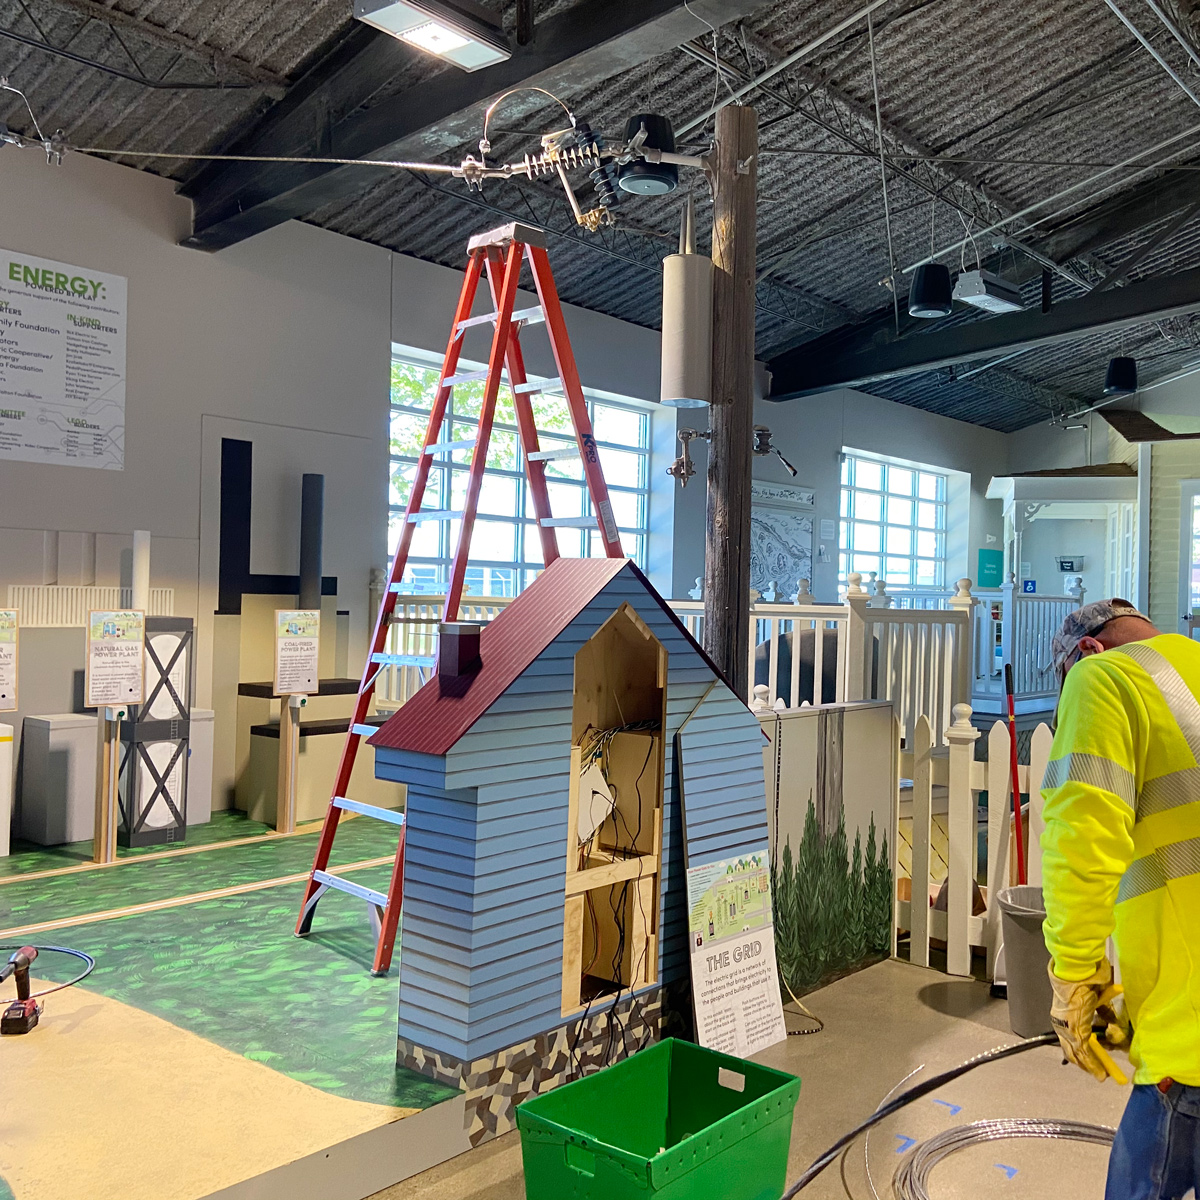 Nearing completion of the Energy: Powered by Play exhibit installation